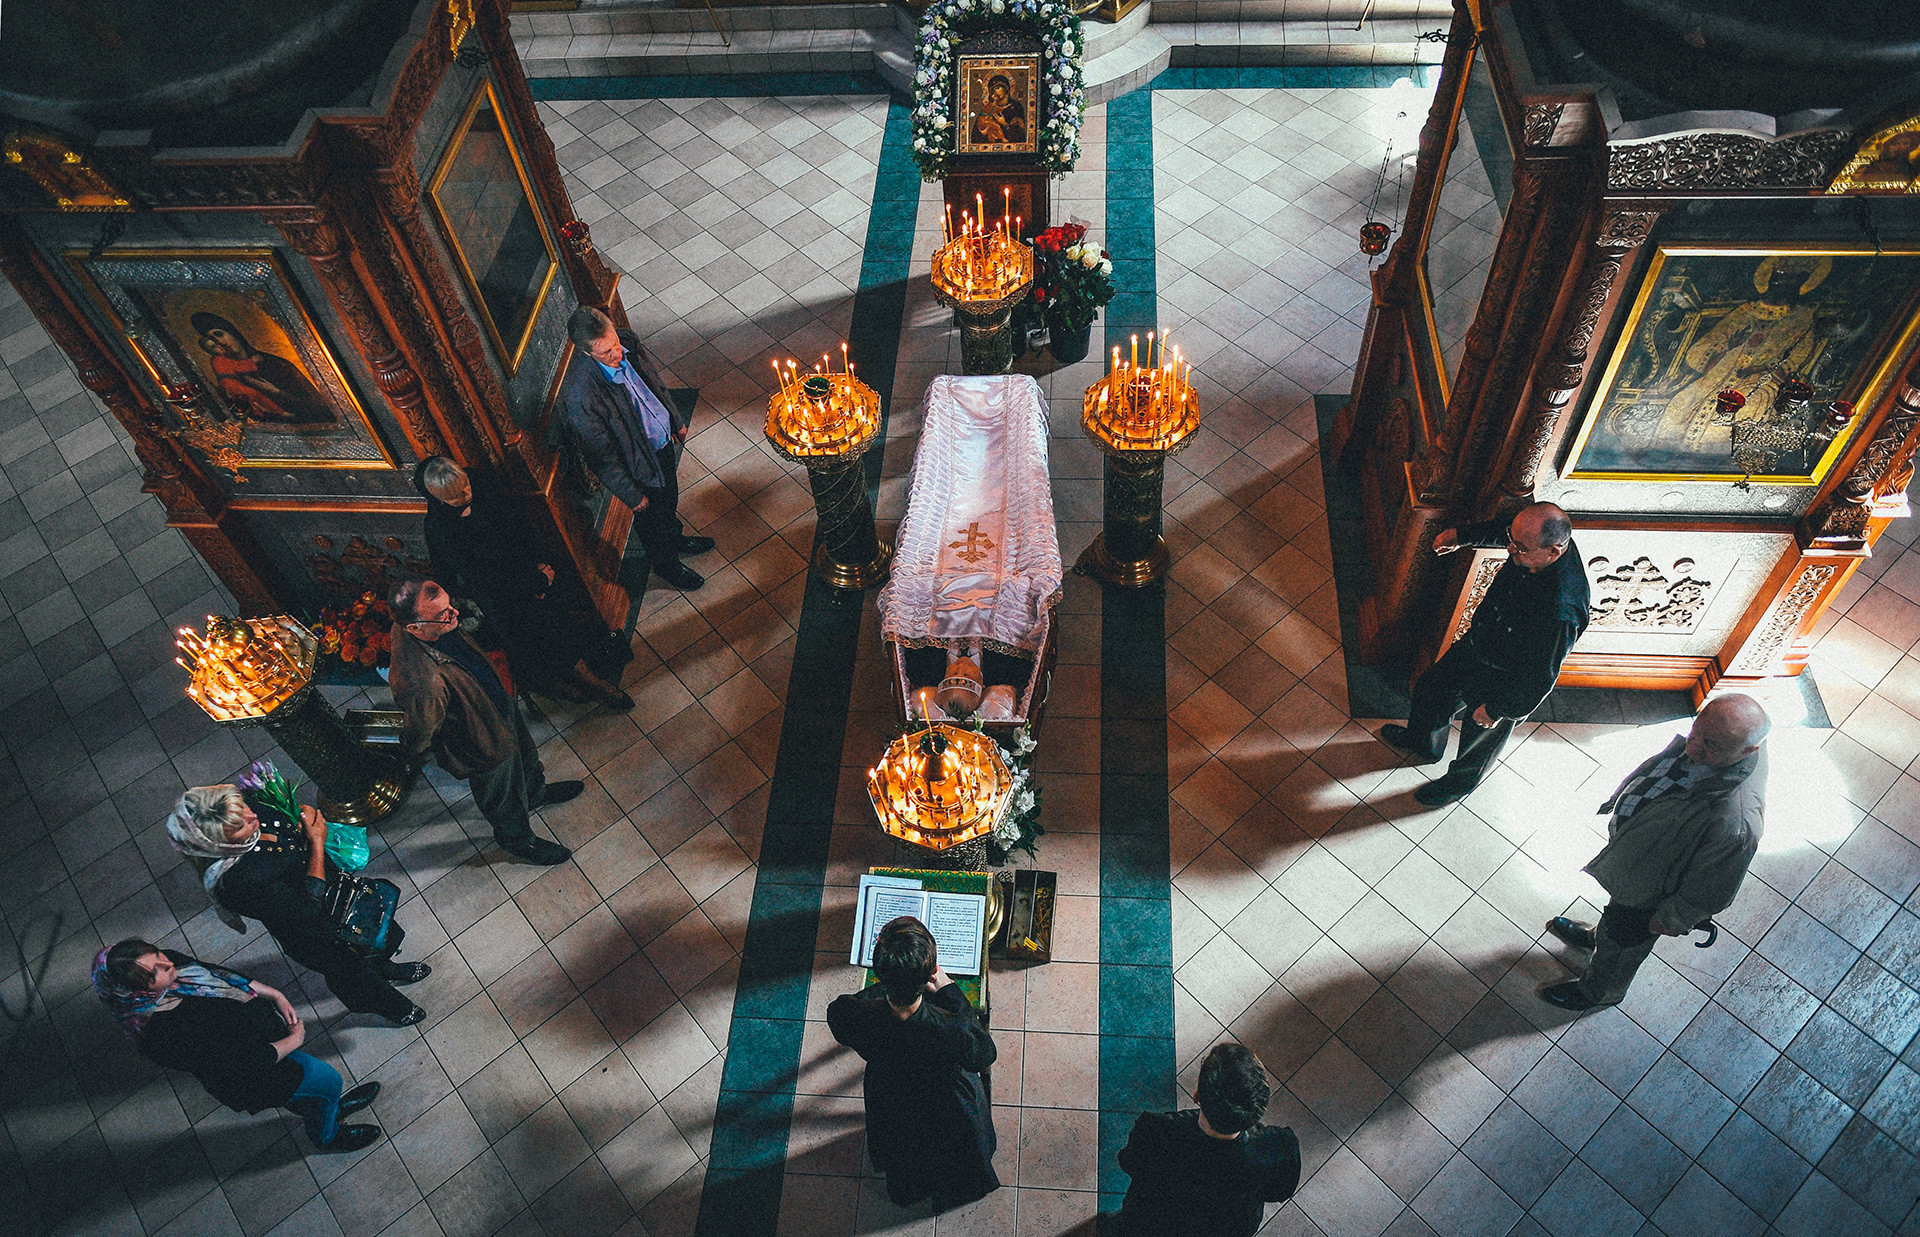 Memorial service in a Russian church